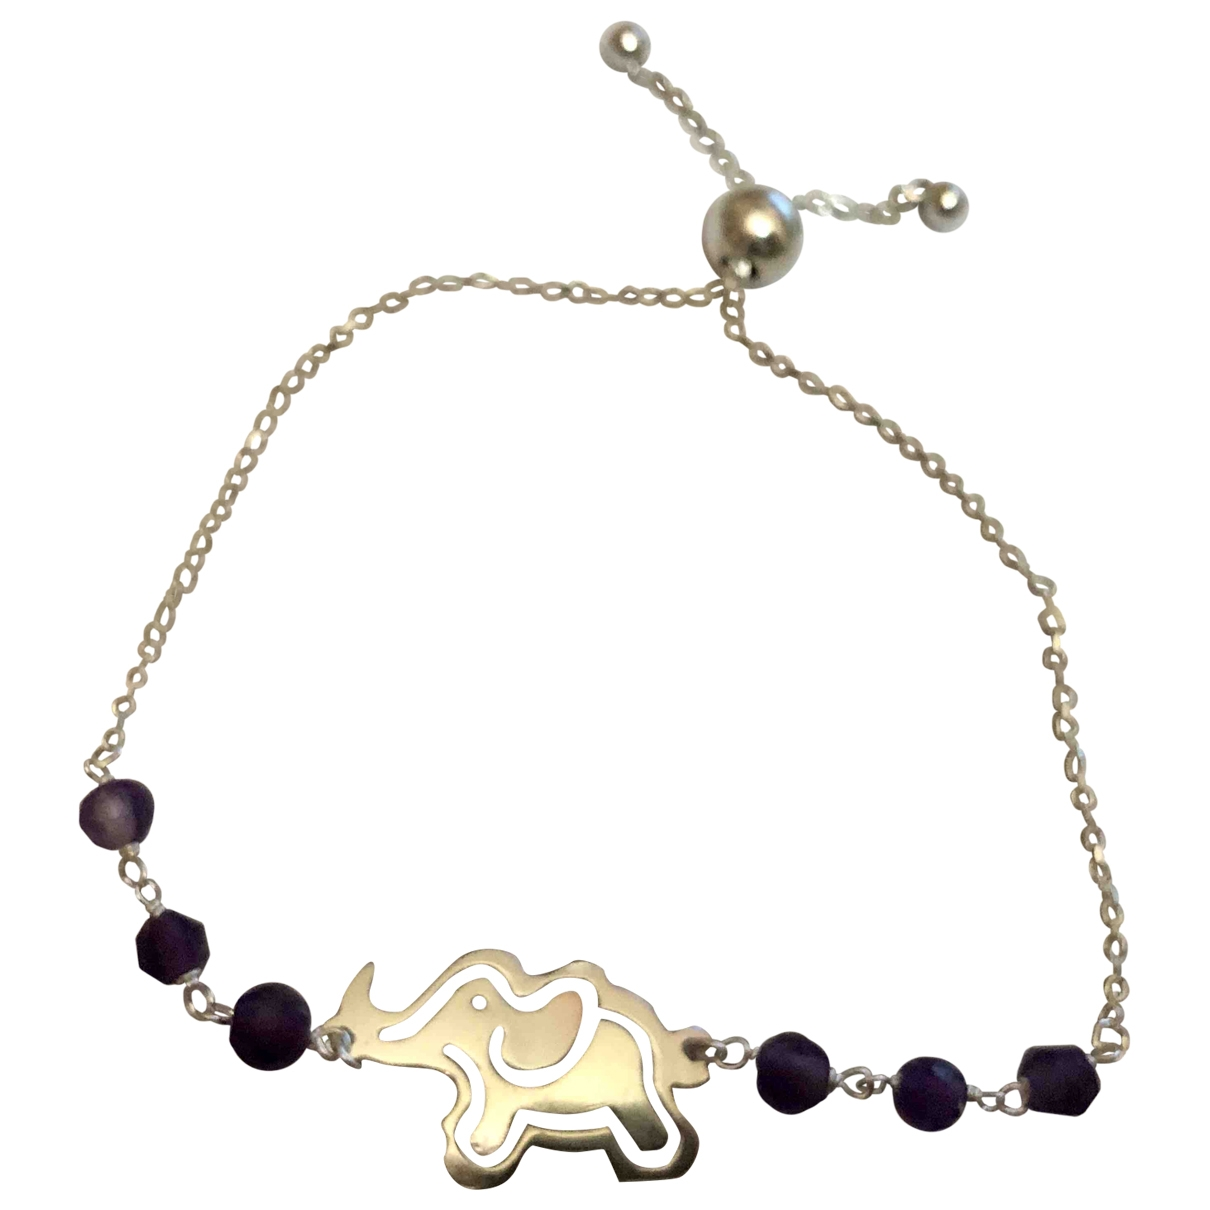 Non Signe / Unsigned Amethyste Armband in  Lila Silber